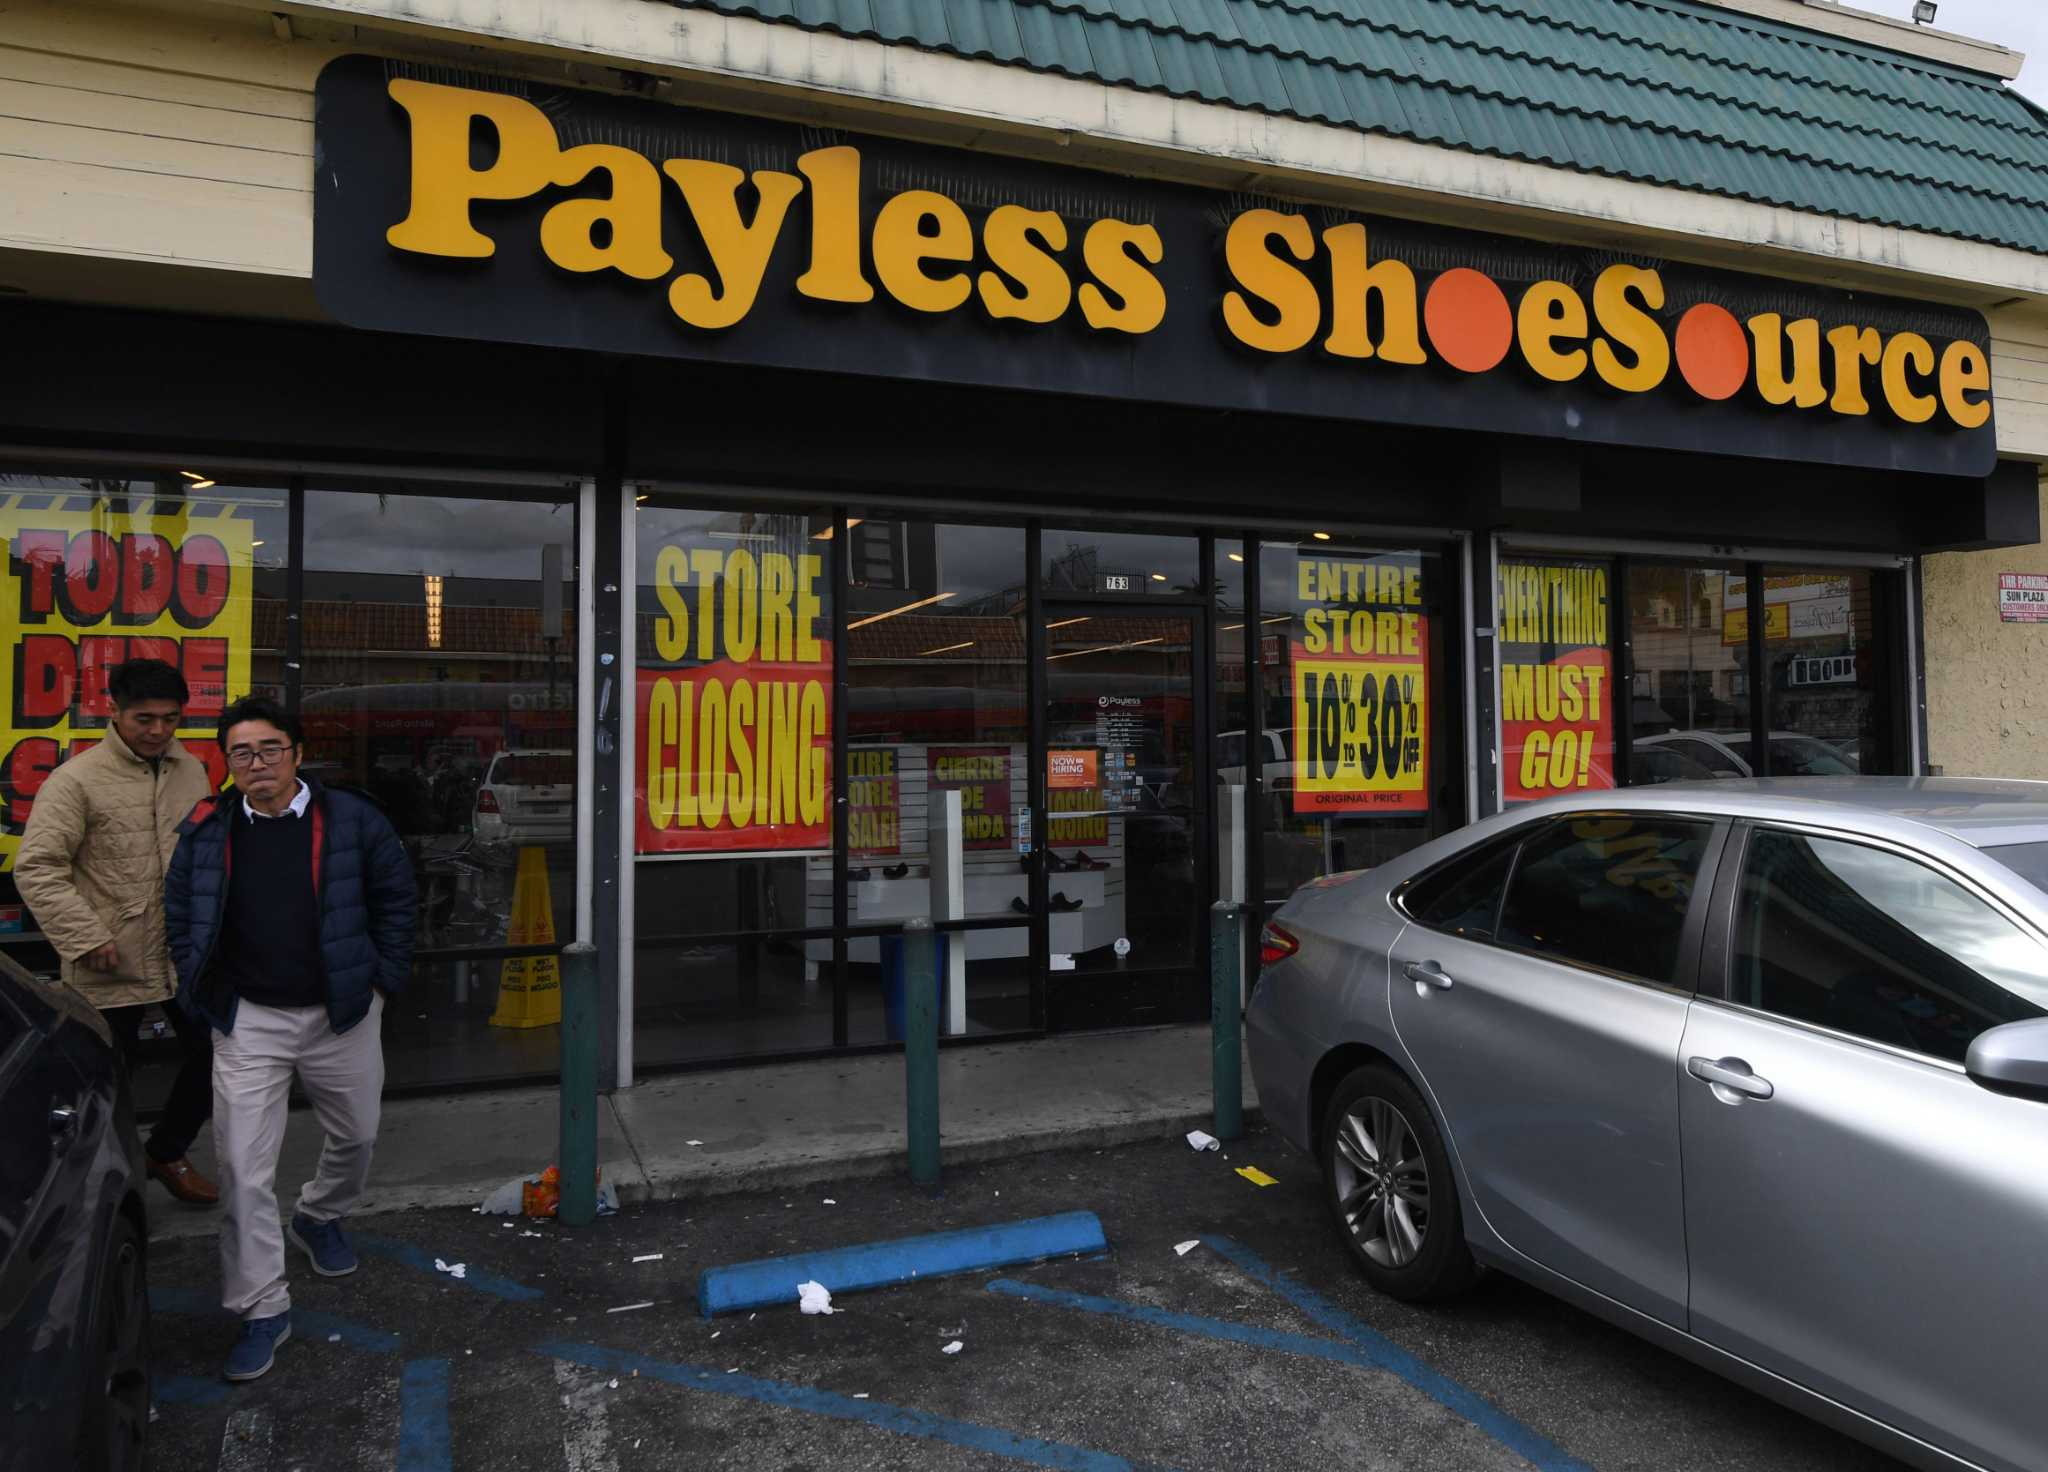 Business roundups: Payless ShoeSource stores closing, CBD supplier debuts in Lake Houston